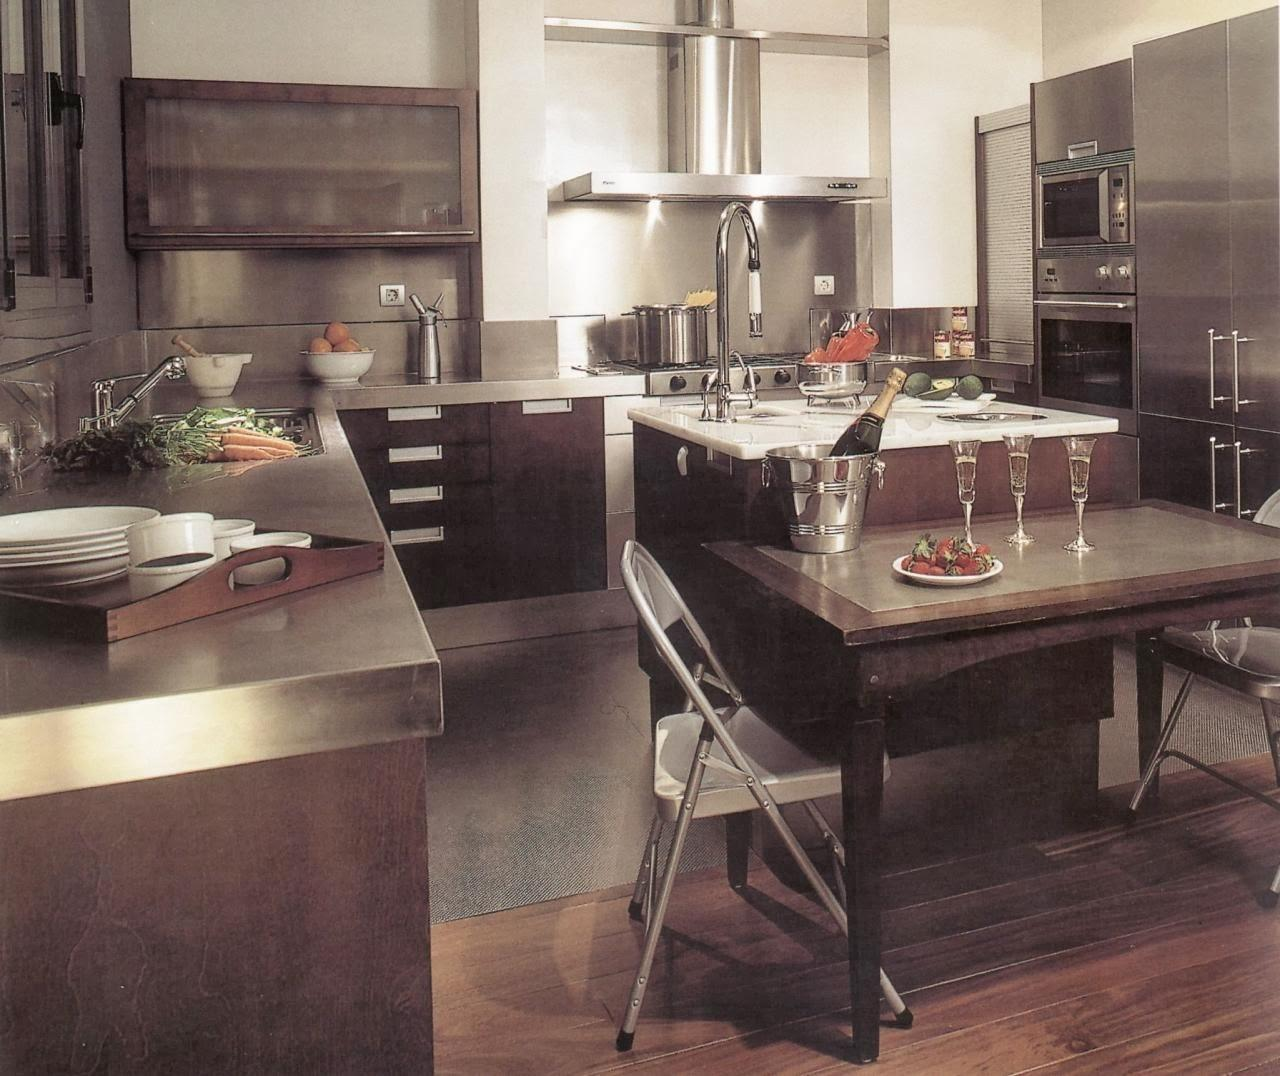 Stainless Steel Kitchen Countertop Sus Backsplash